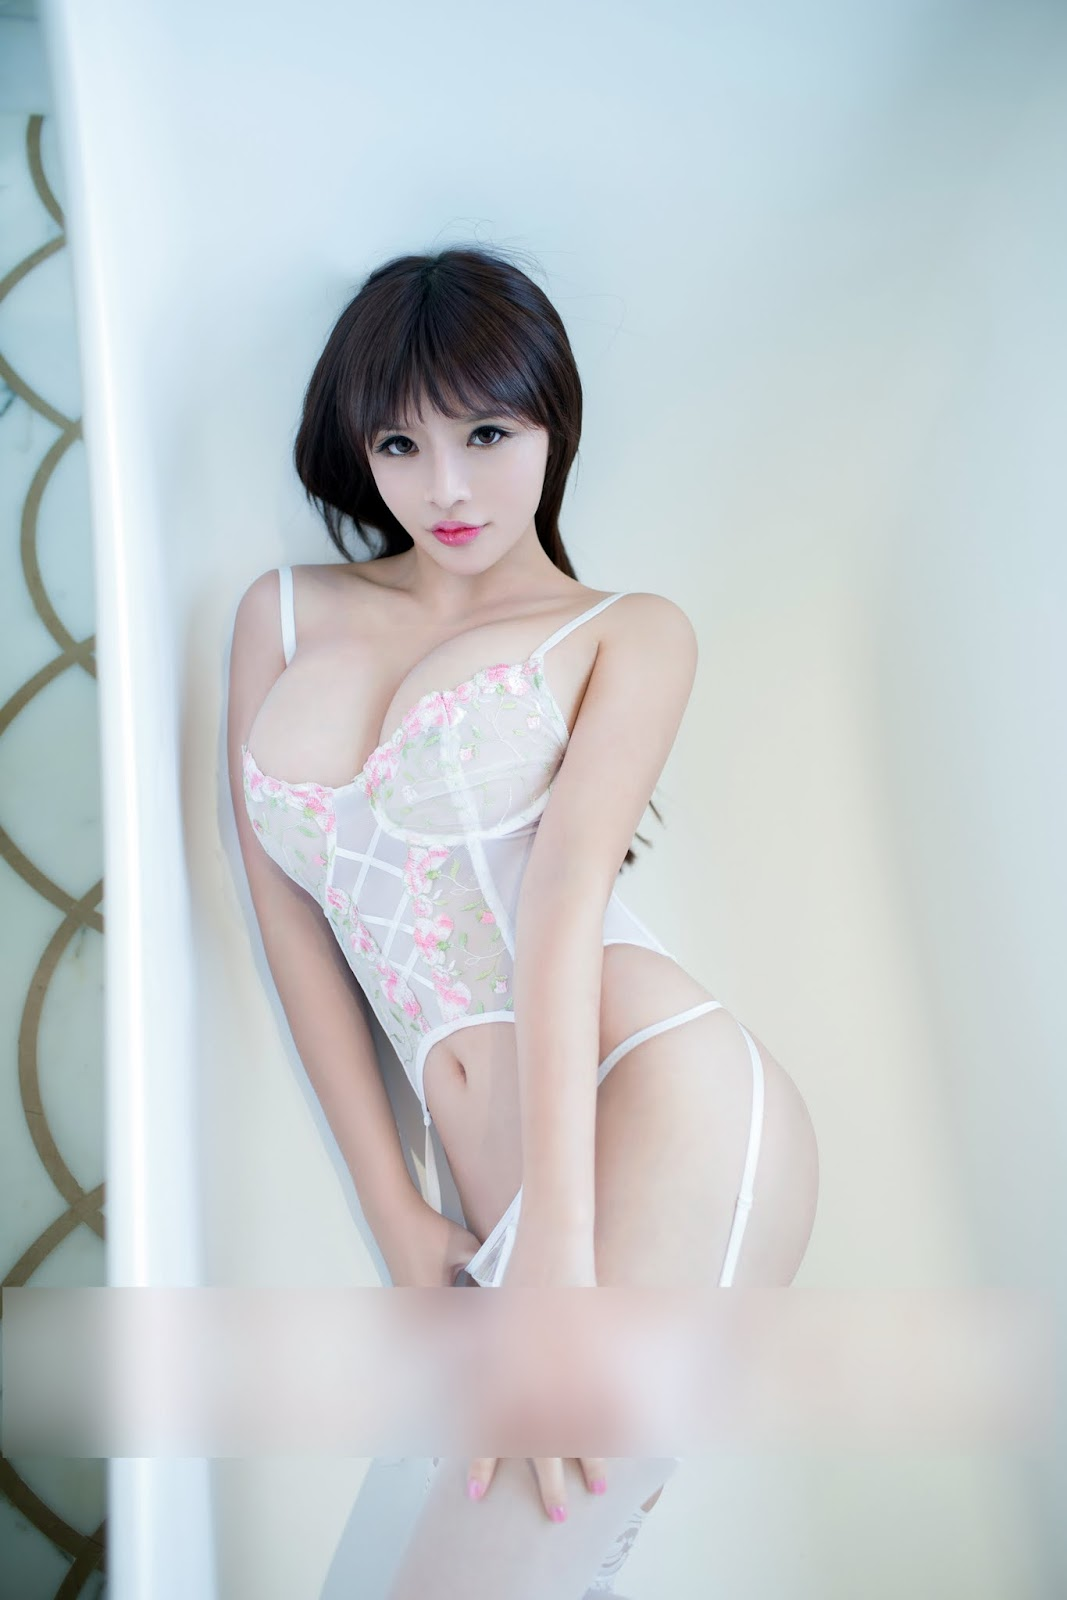 19 - Hot Girl Big TIts TUIGIRL NO.38 Asian Naked